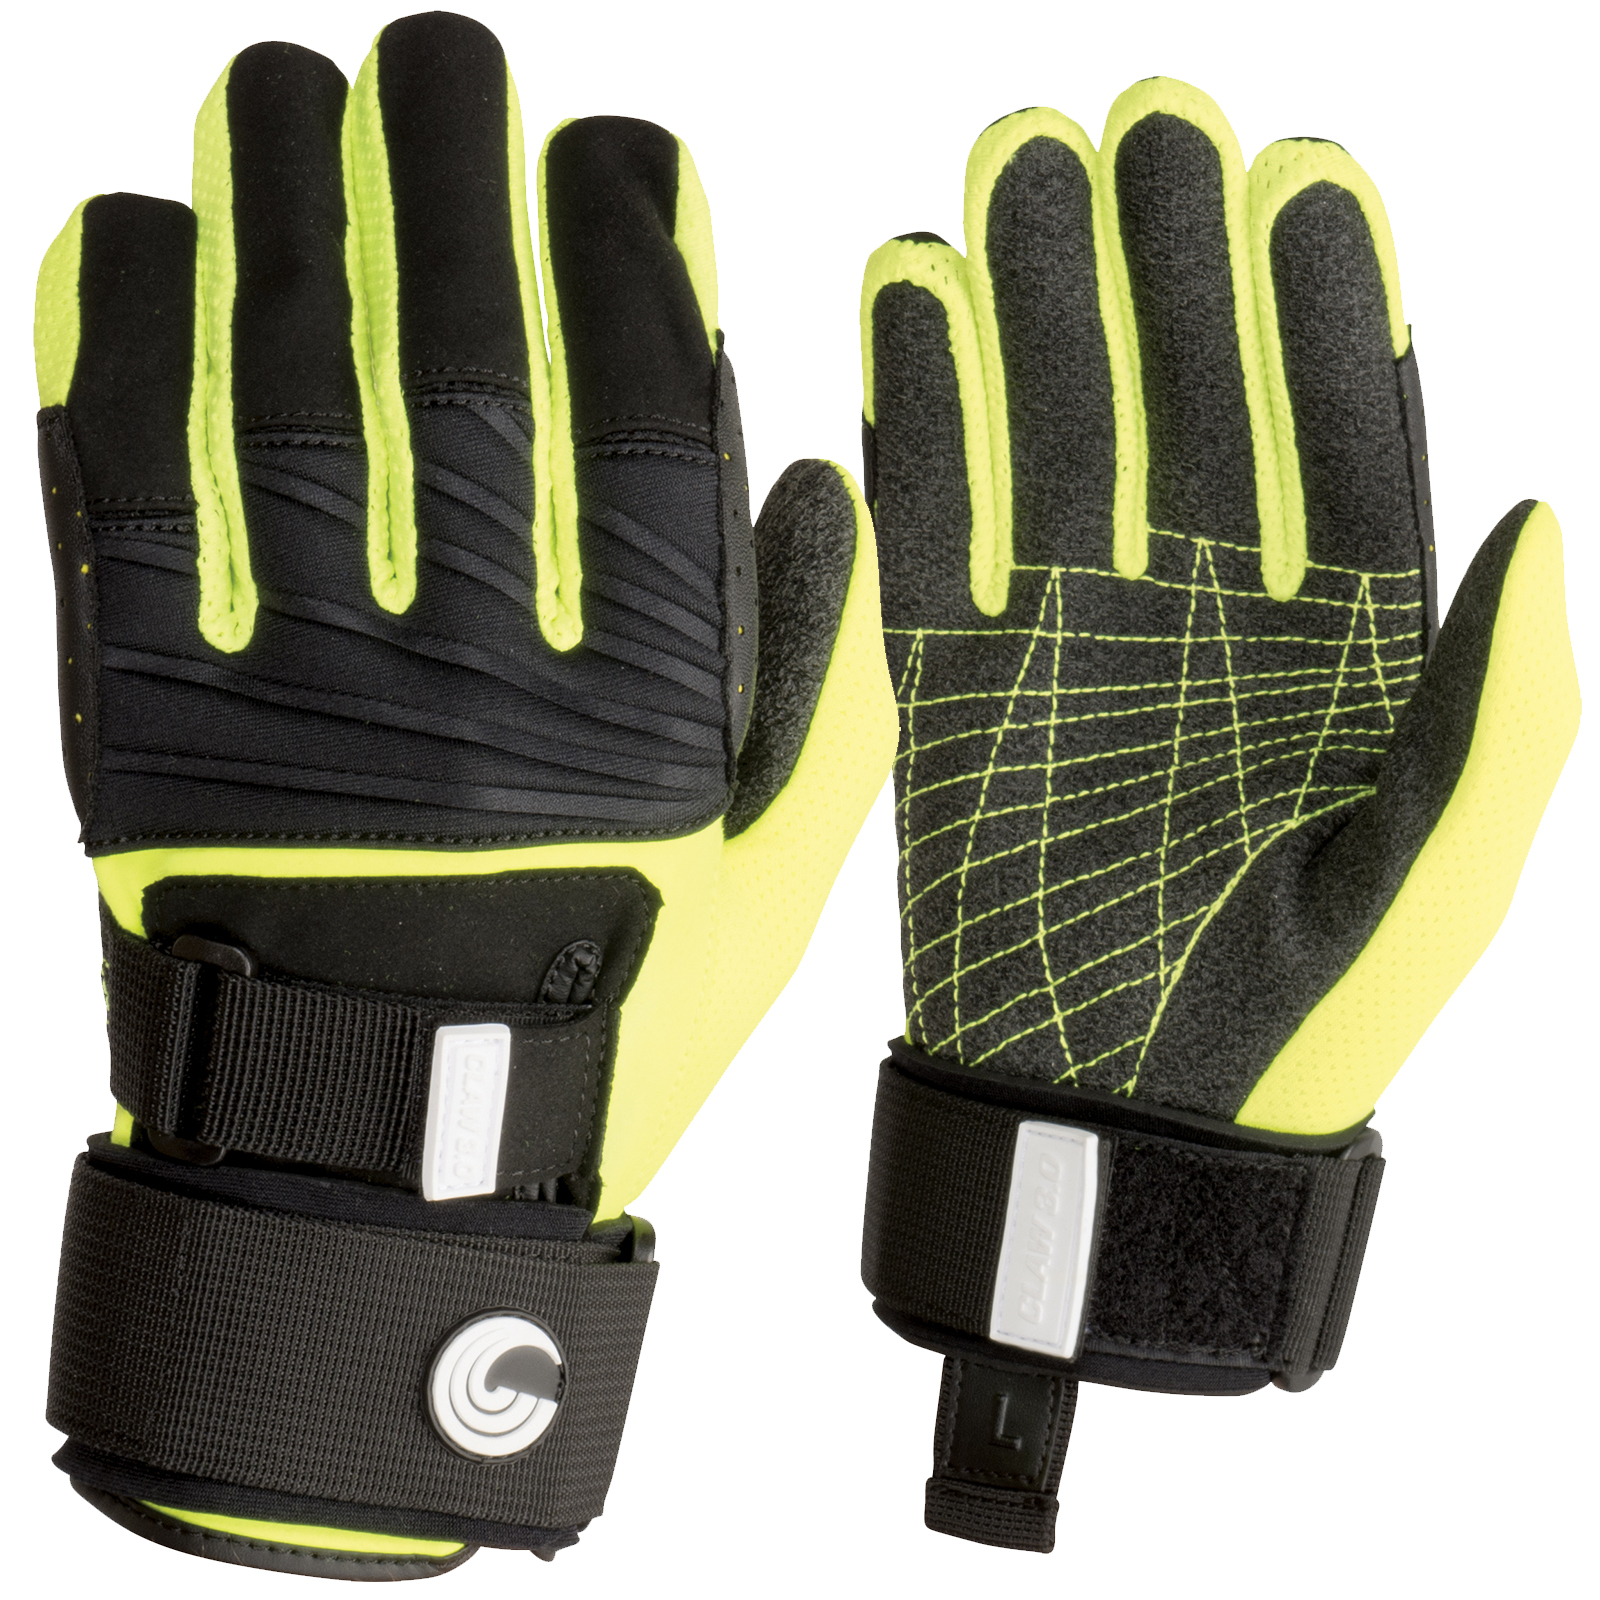 CLAW 3.0 GLOVE CONNELLY 2018